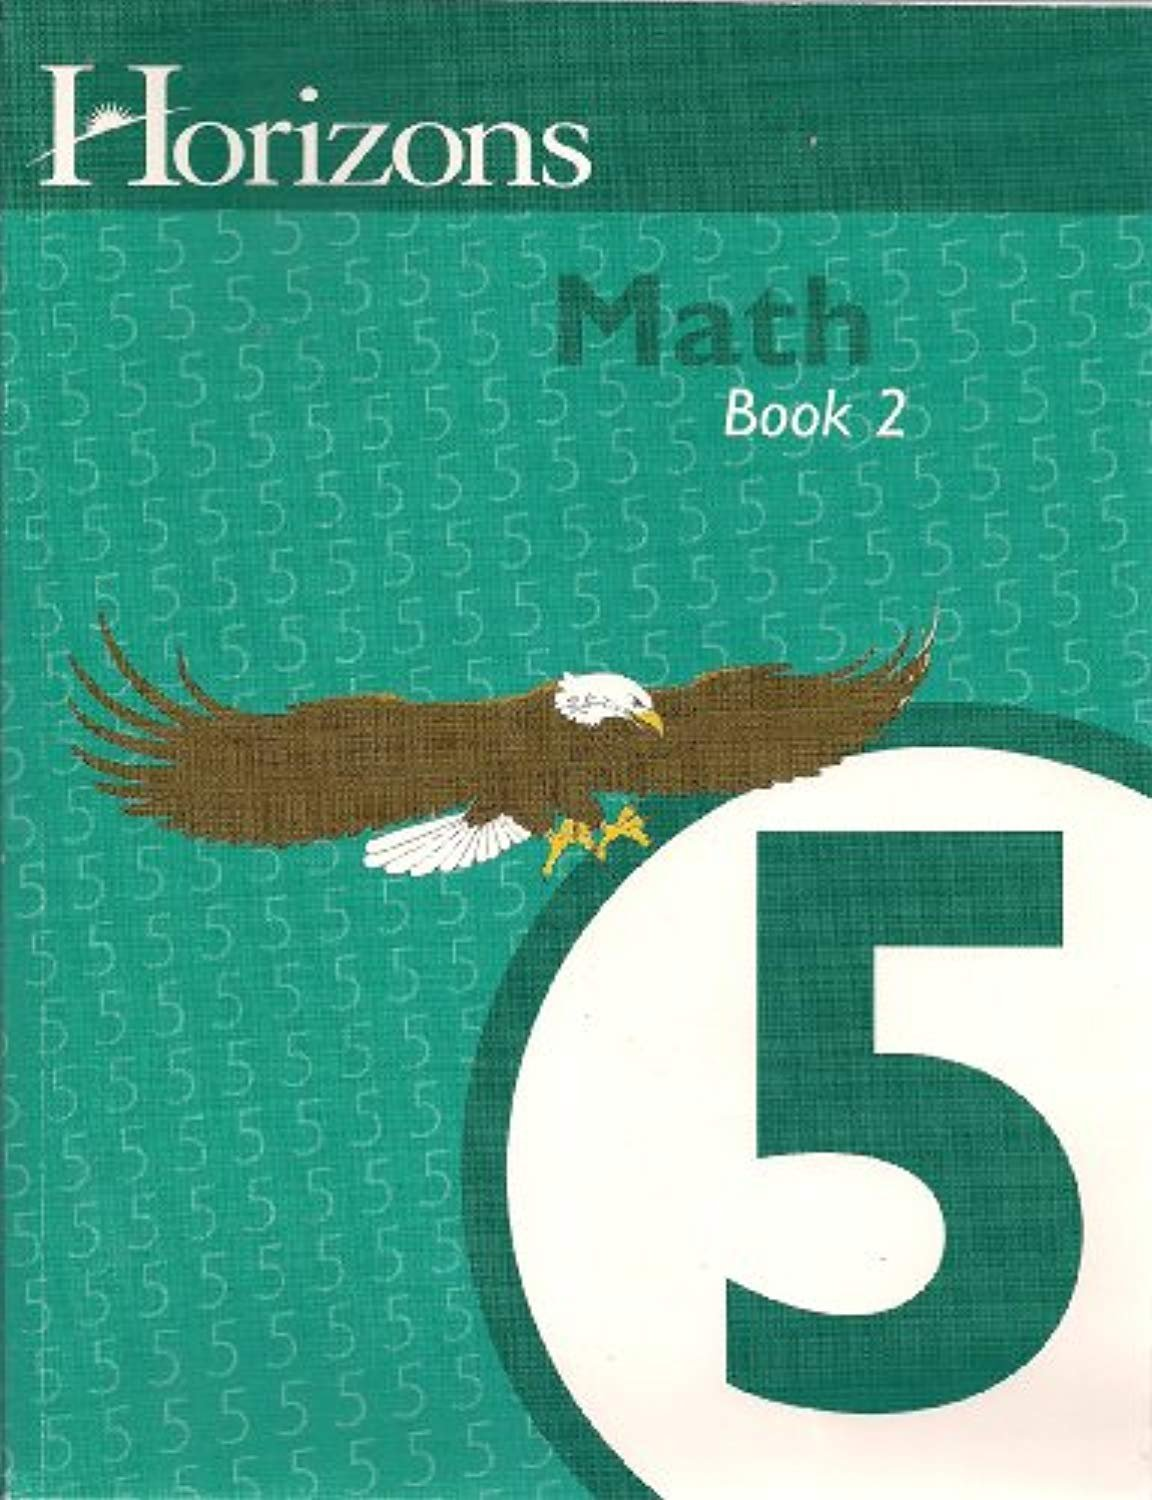 Horizons Mathematics 5, Book 2 (Lifepac) 9781580959988 | eBay